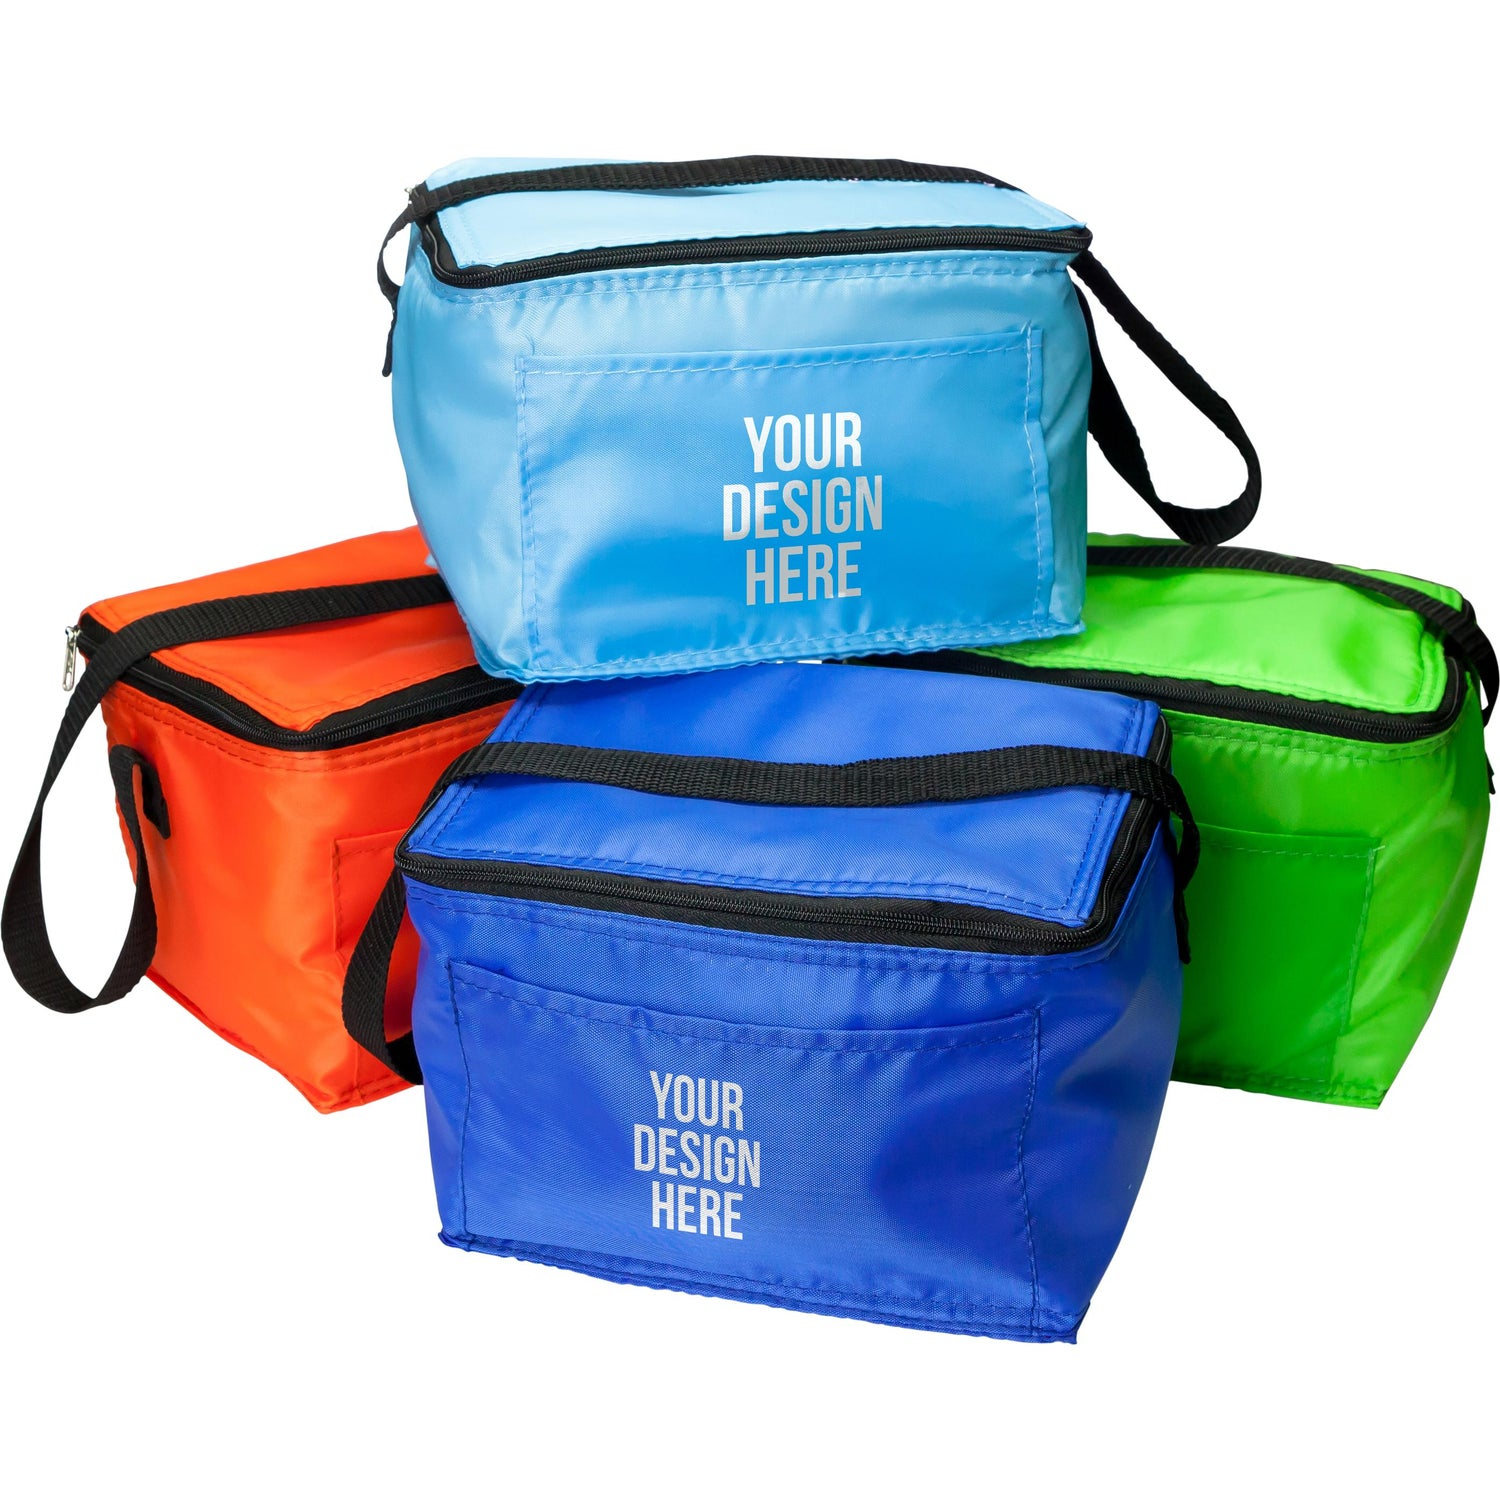 Promotional 6 Pack Cooler Budget Kooler Bags With Custom